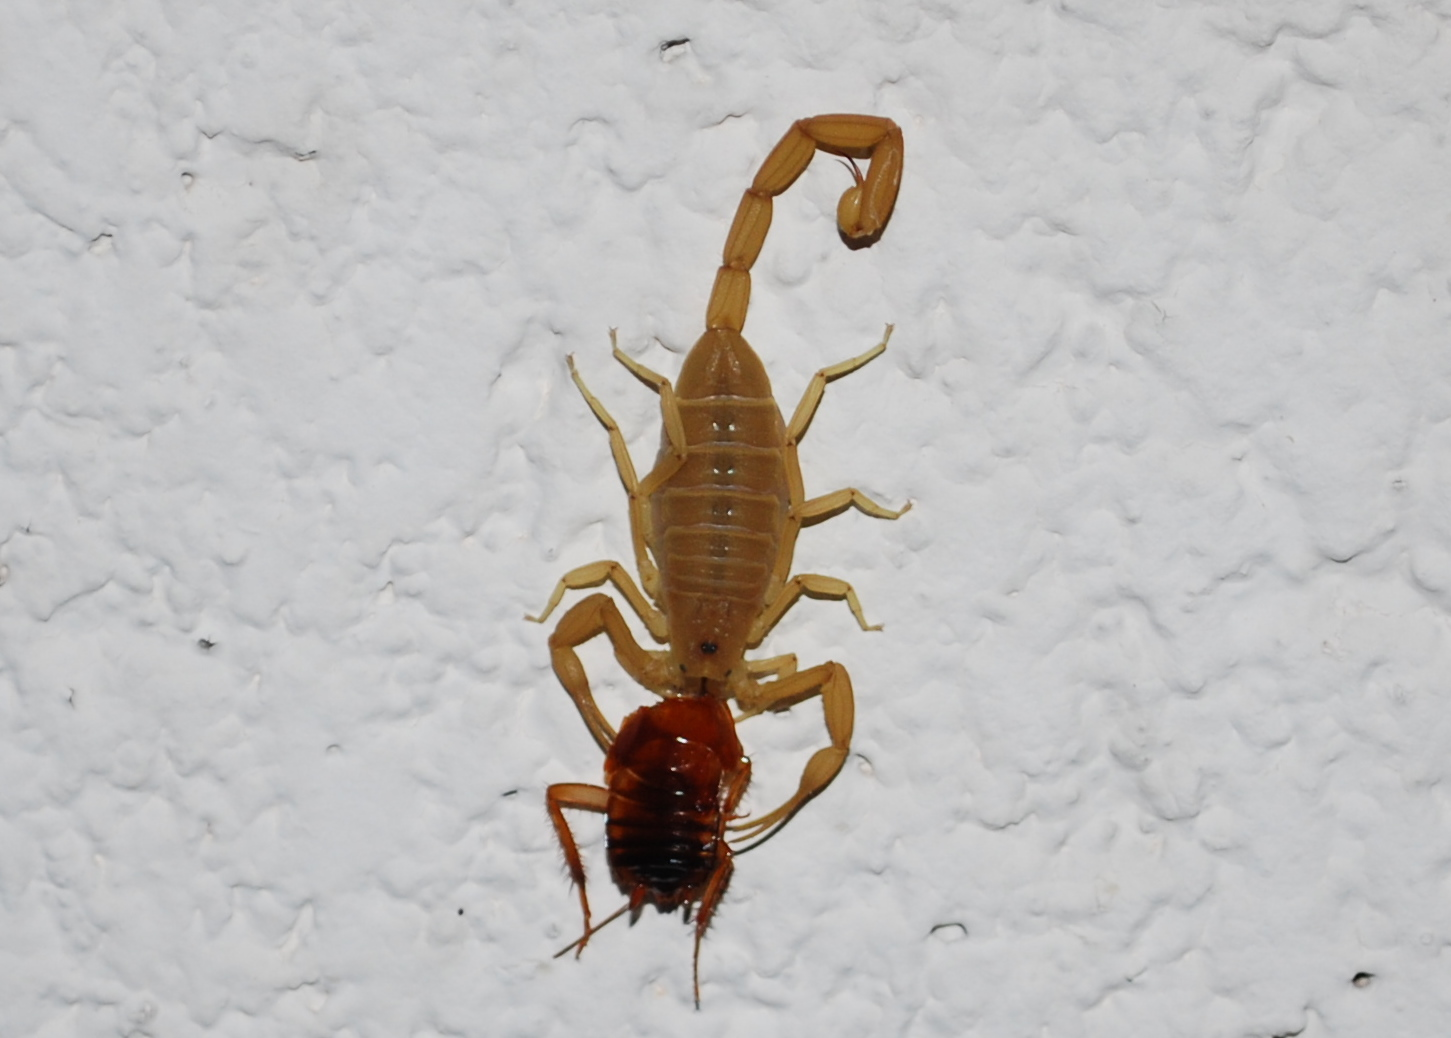 The Ostlund Times How To Catch A Scorpion